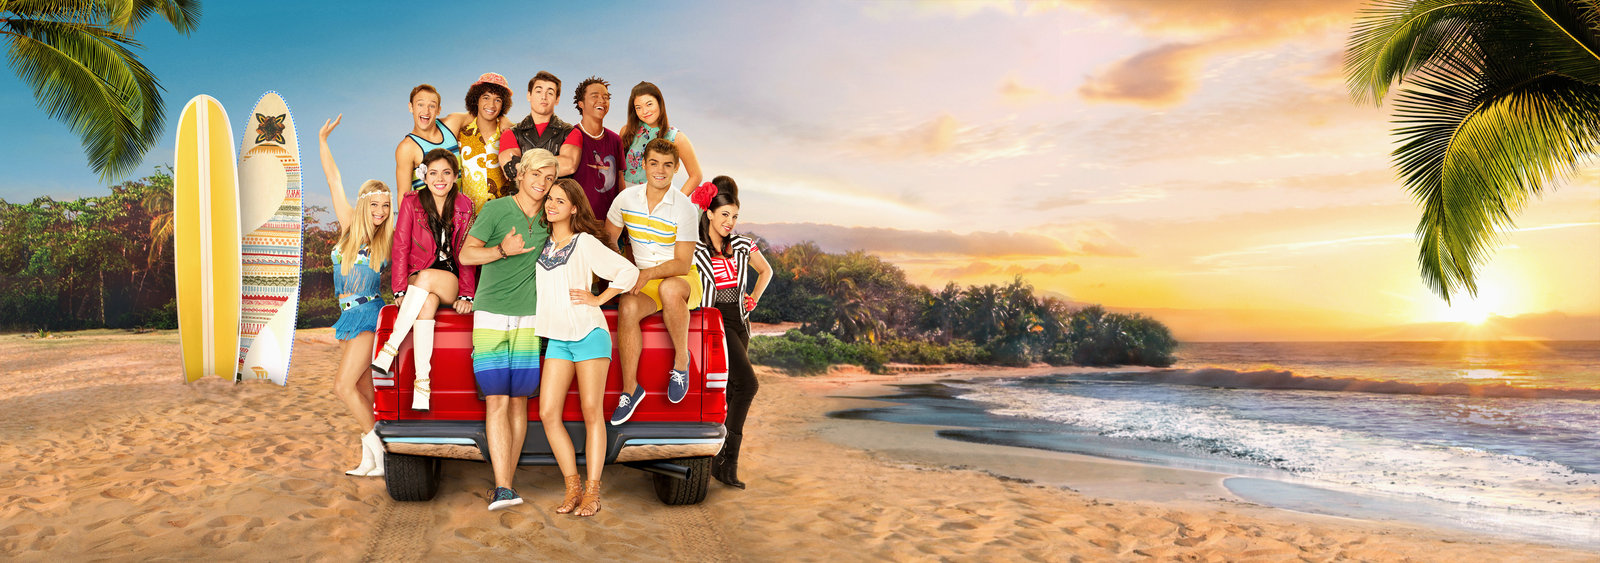 Teen Beach 2 – Bild: ORF